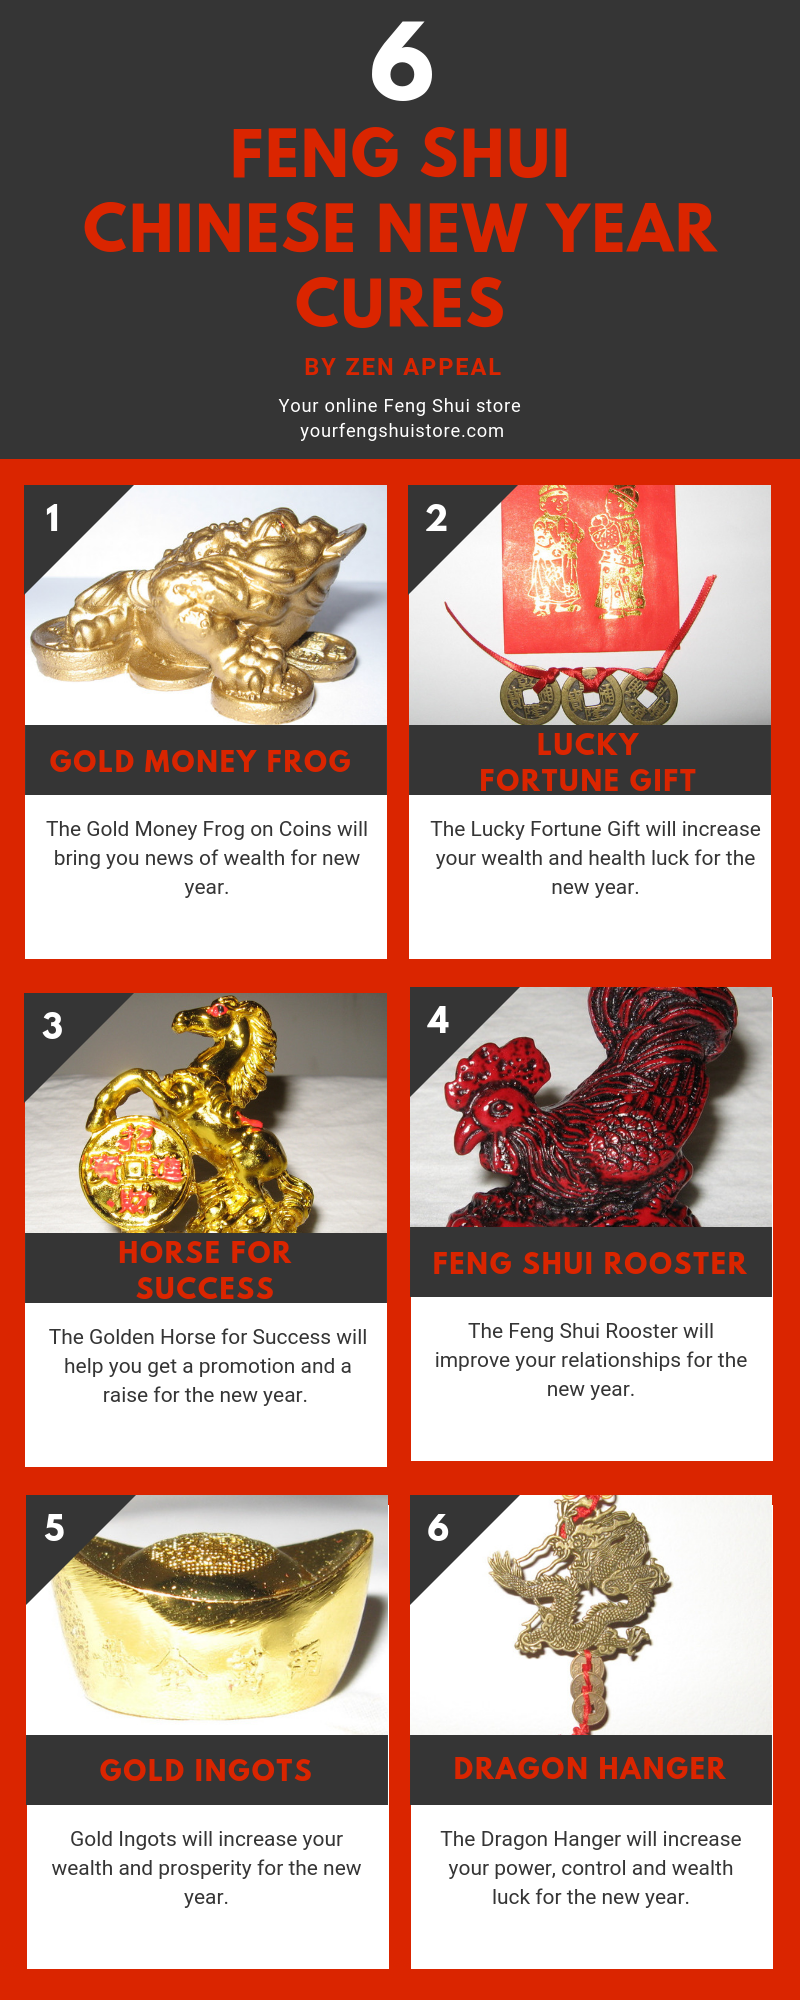 Feng Shui Chinese New Year Cures